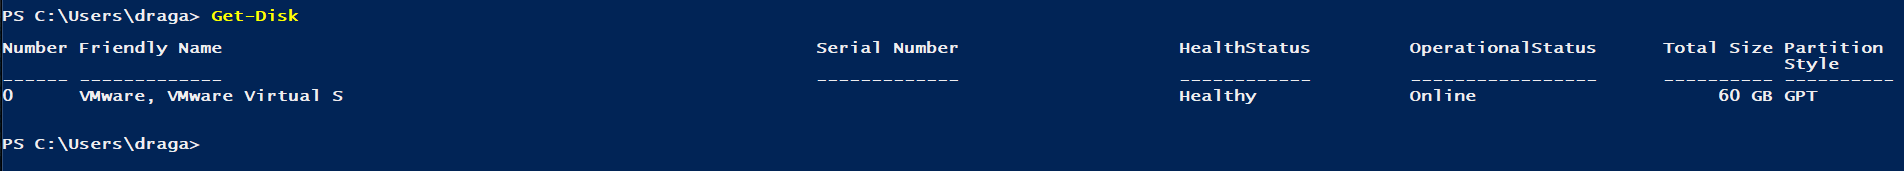 Disk Partition style as GPT